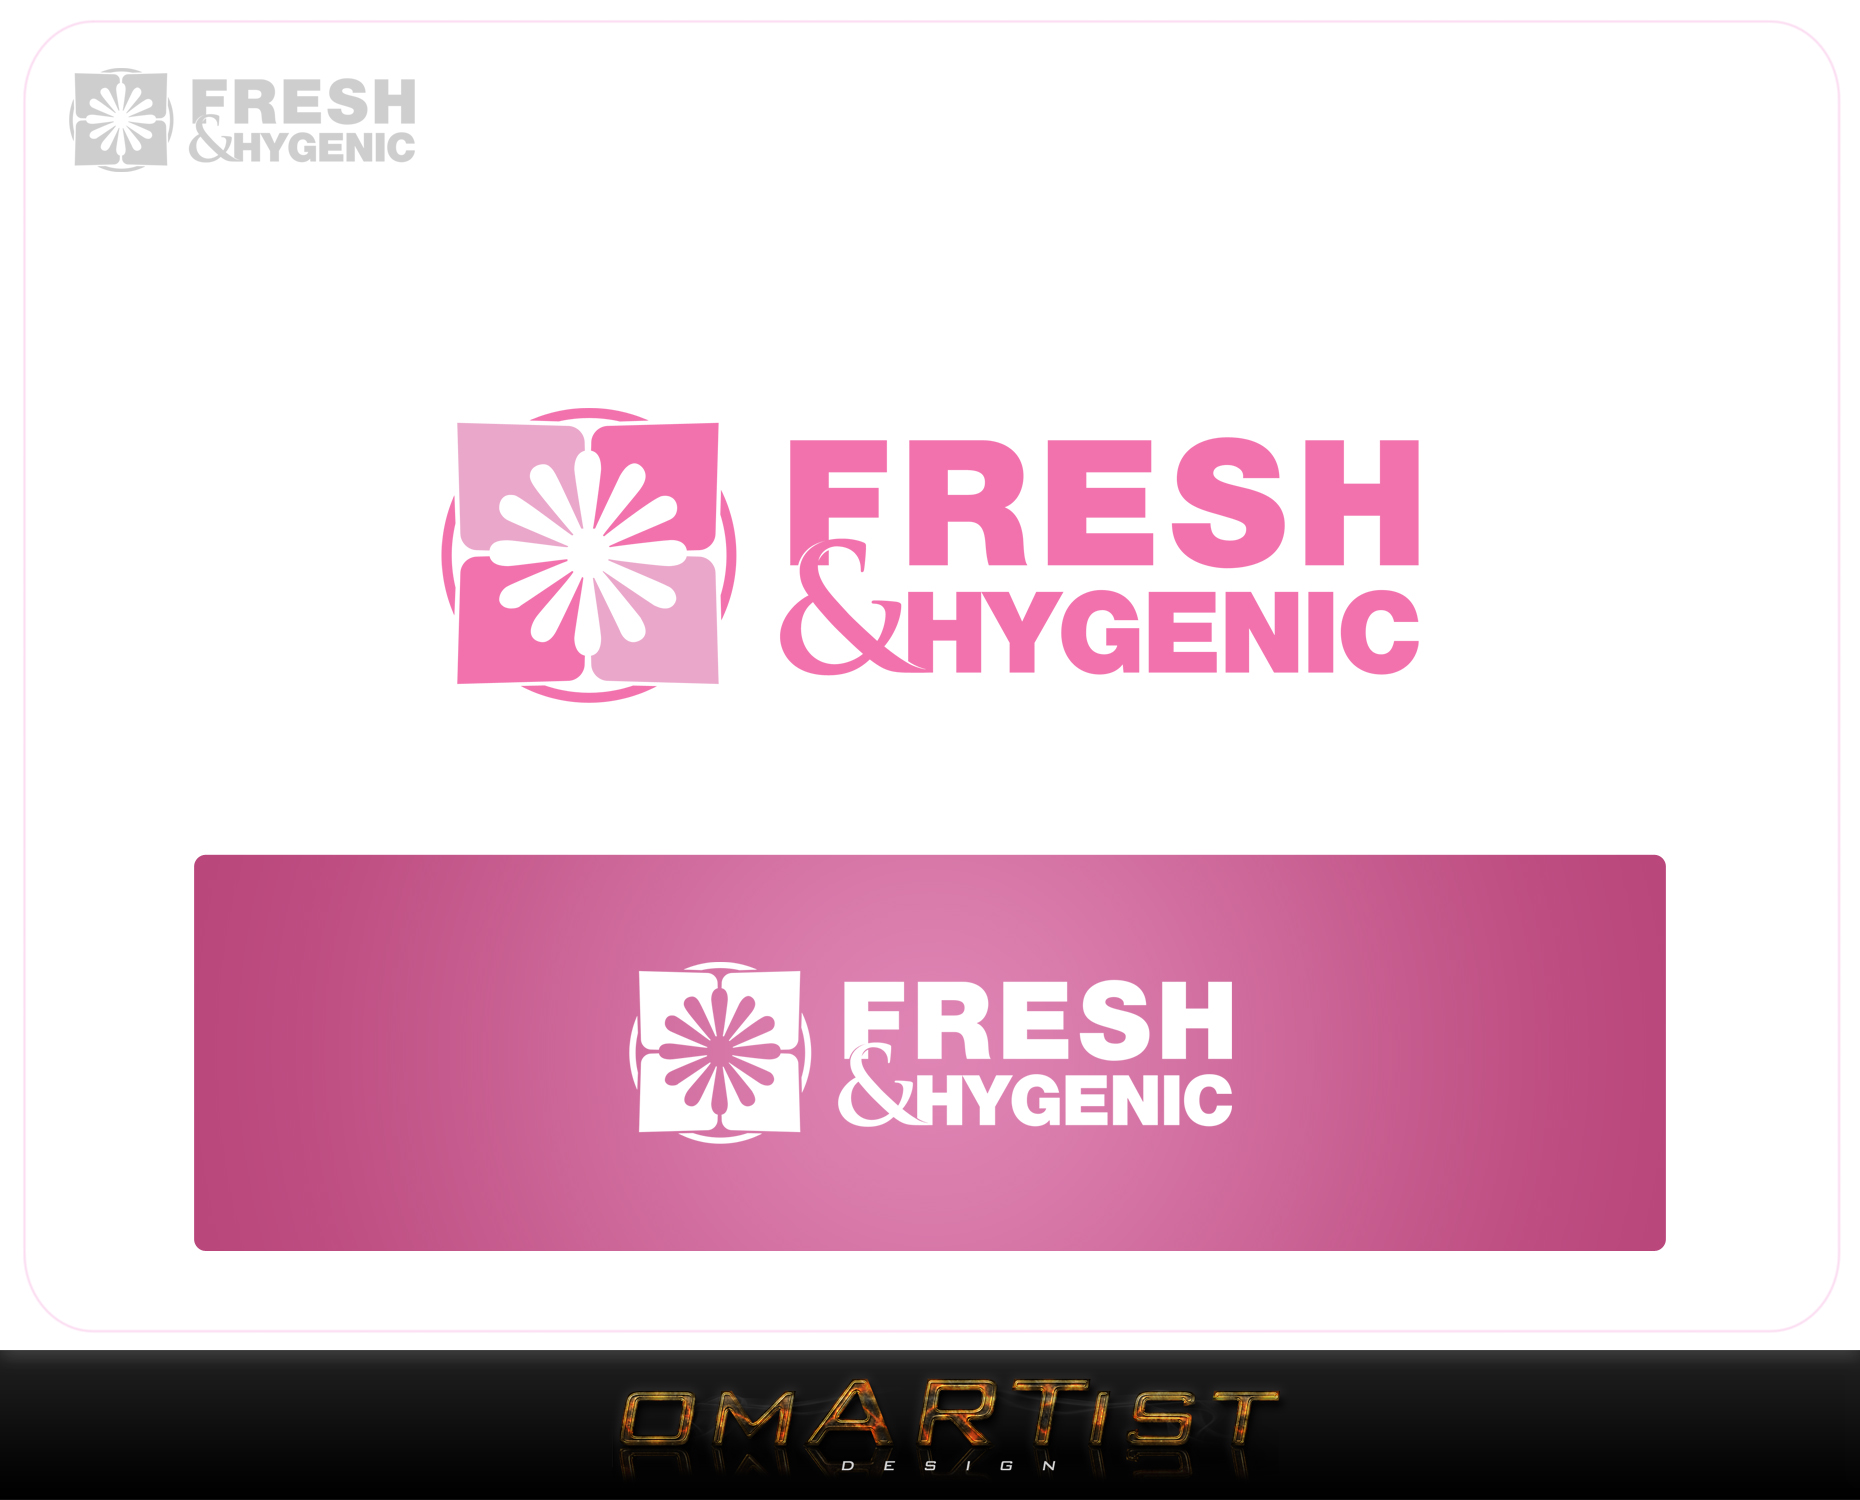 Logo Design by omARTist - Entry No. 142 in the Logo Design Contest Fun Logo Design for Fresh & Hygenic.